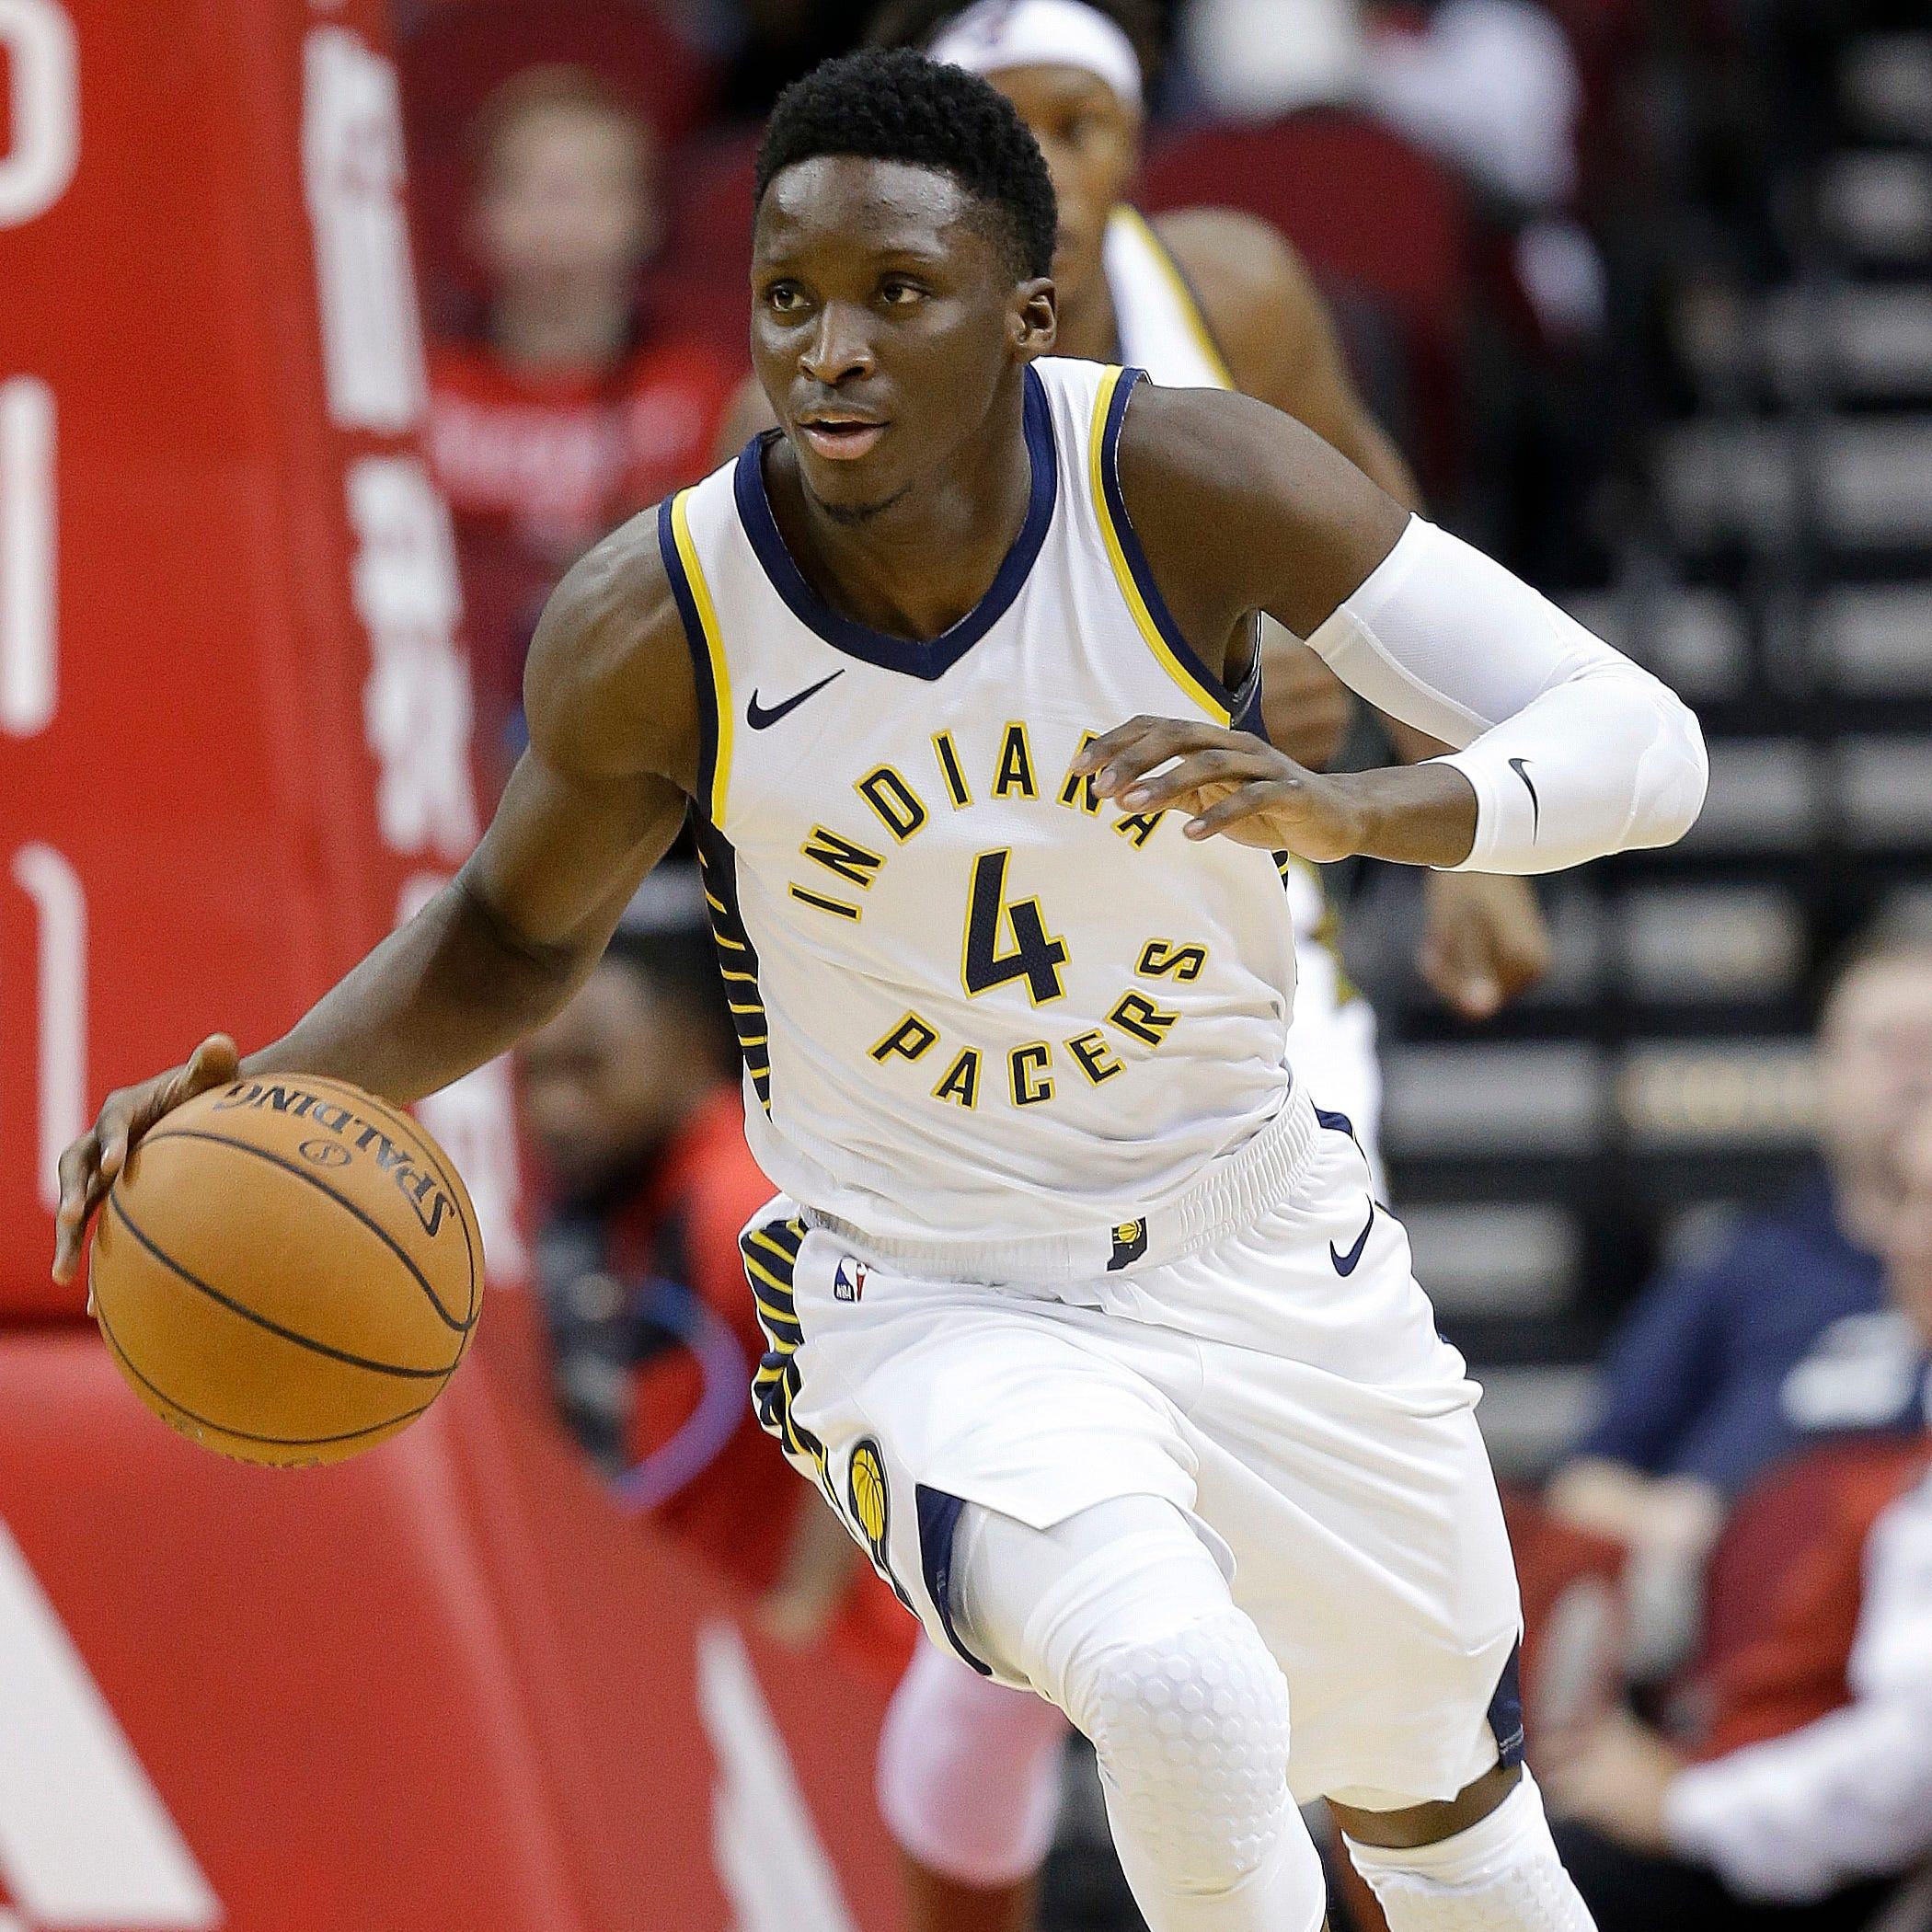 Victor Oladipo leaves Pacers game after aggravating right knee